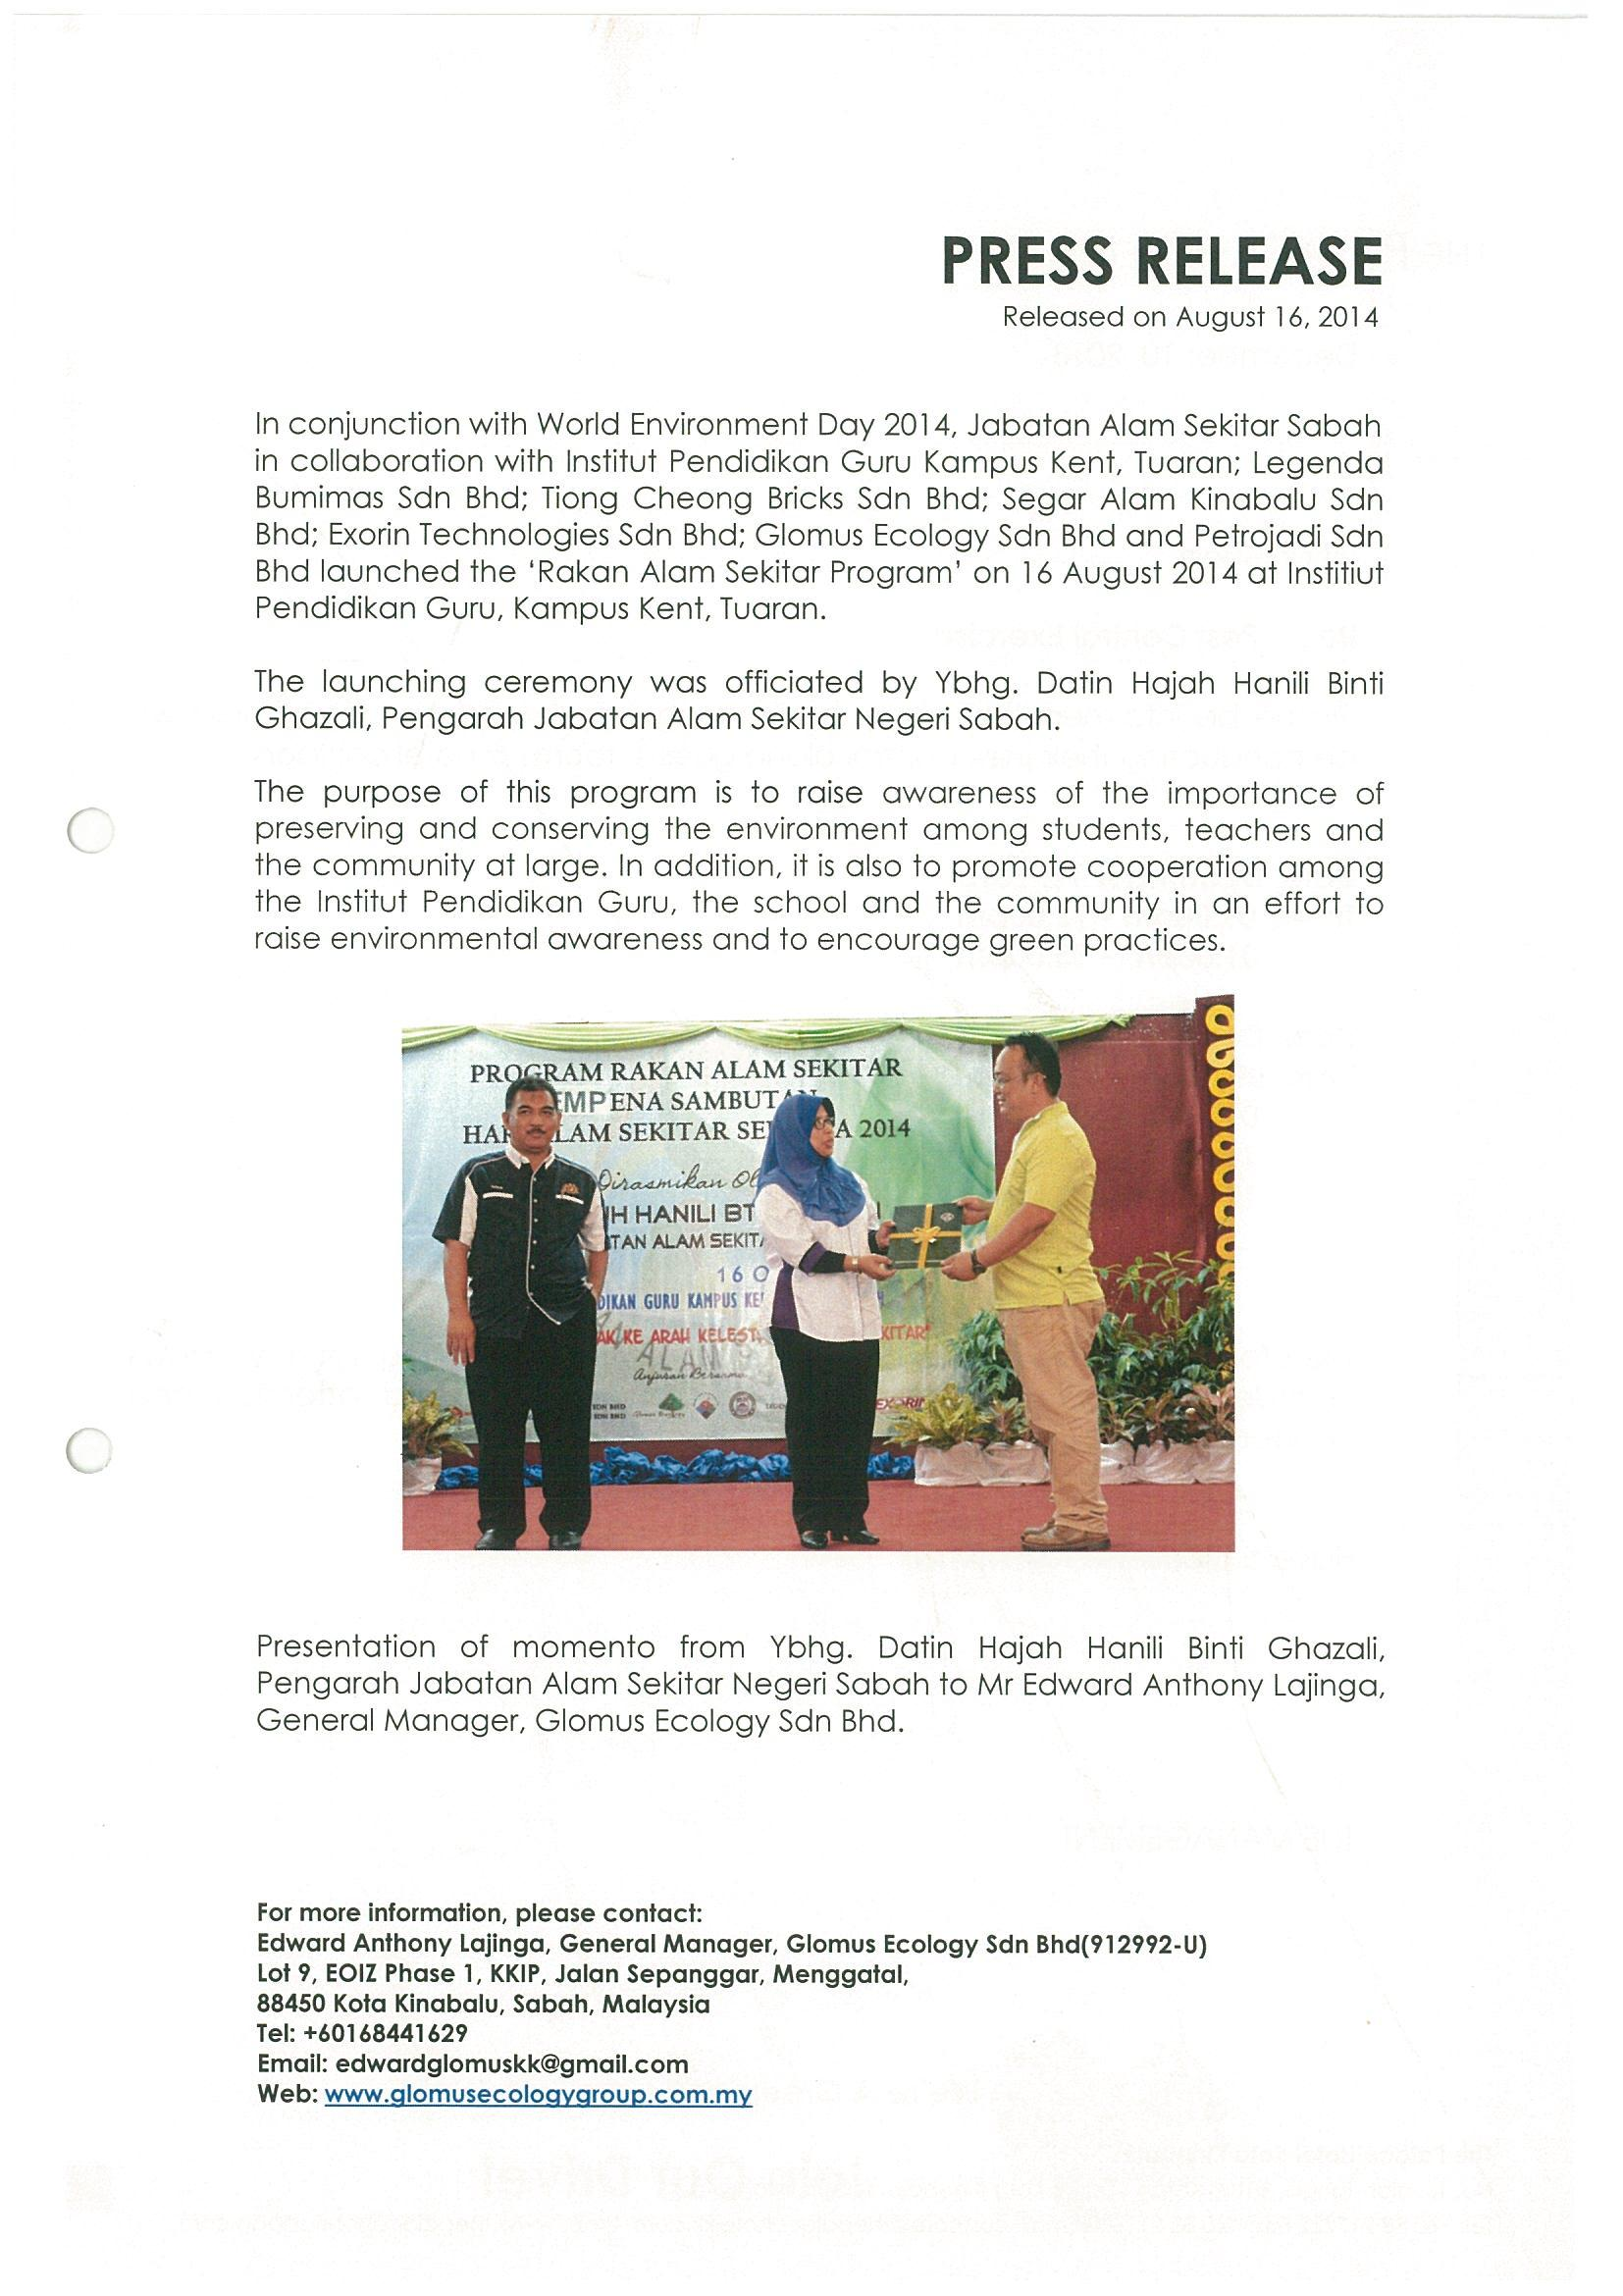 Press Release Glomus Ecology Sdn Bhd